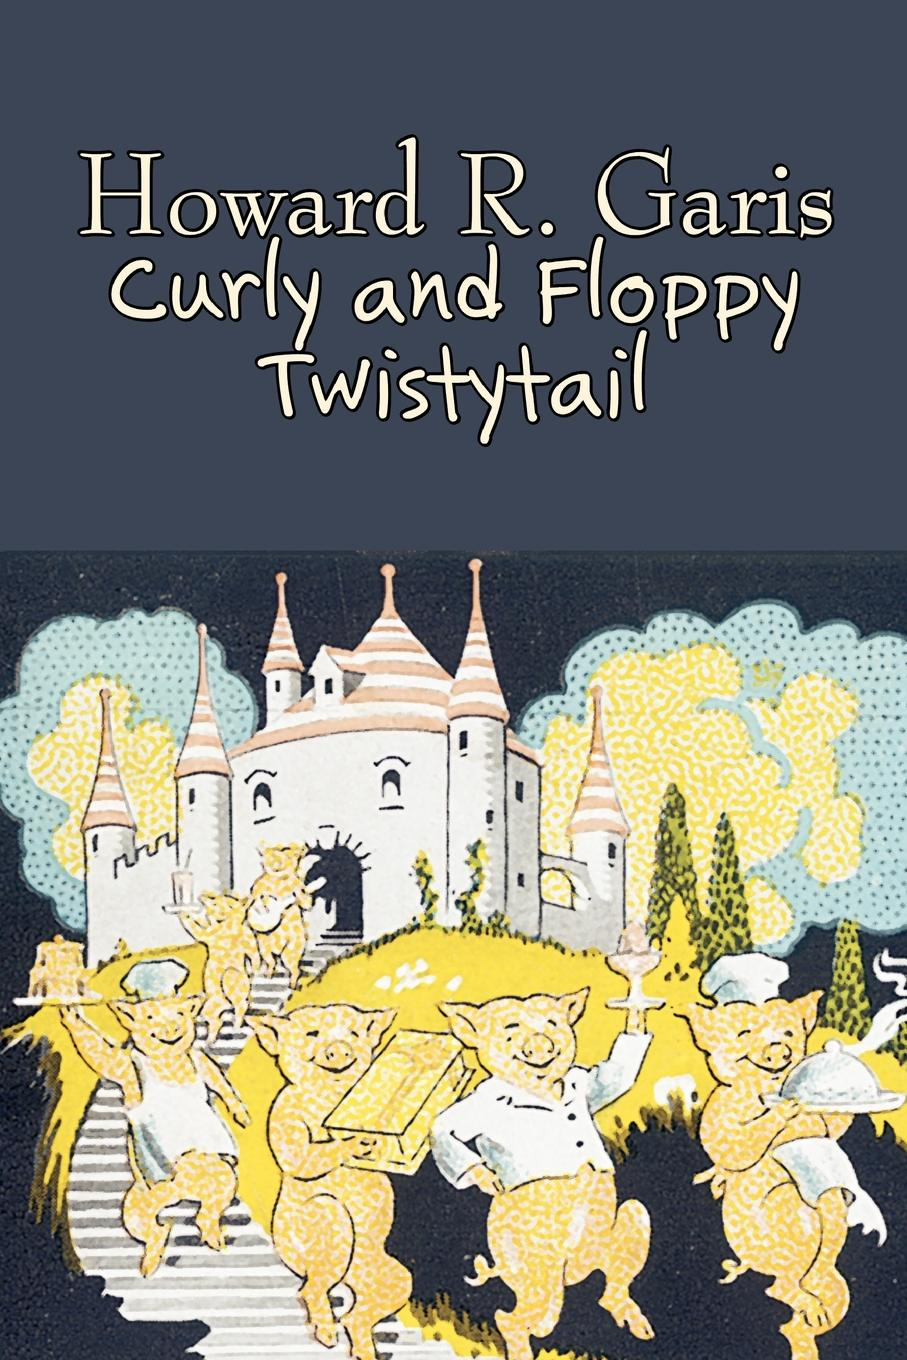 Howard R. Garis Curly and Floppy Twistytail by Howard R. Garis, Fiction, Fantasy & Magic, Animals